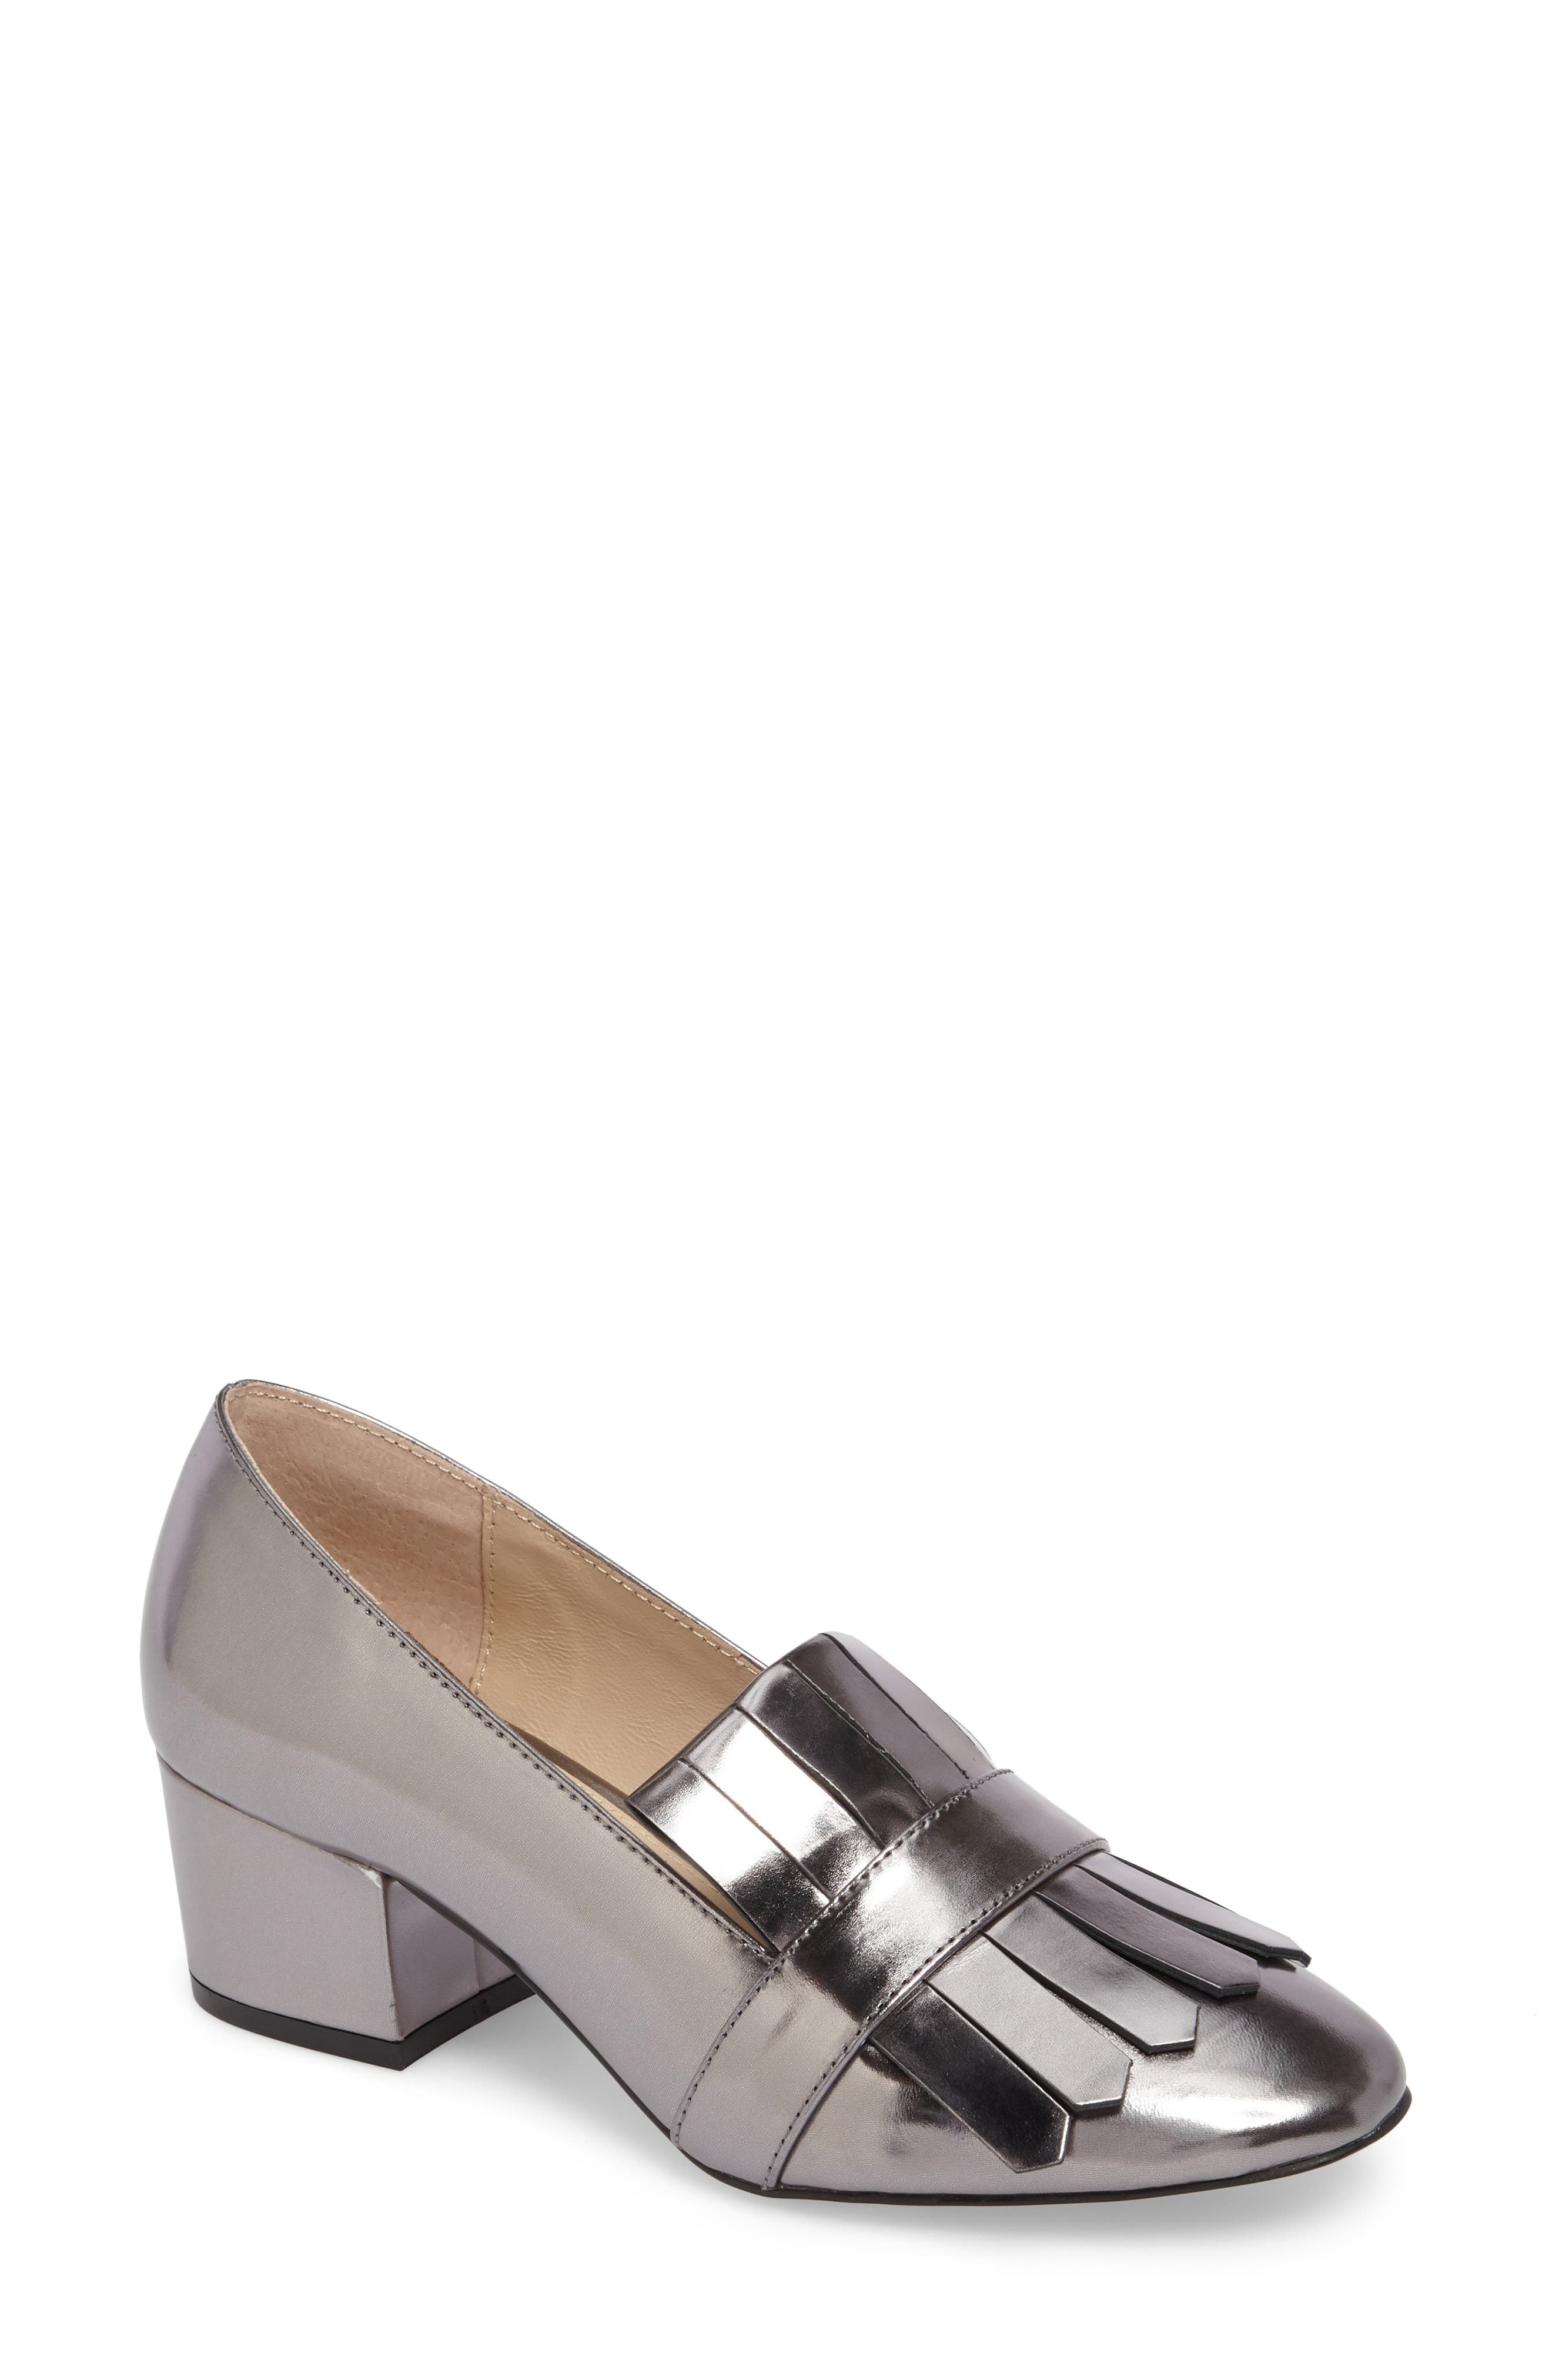 Olive Loafer Pump,                         Main,                         color, PEWTER LEATHER